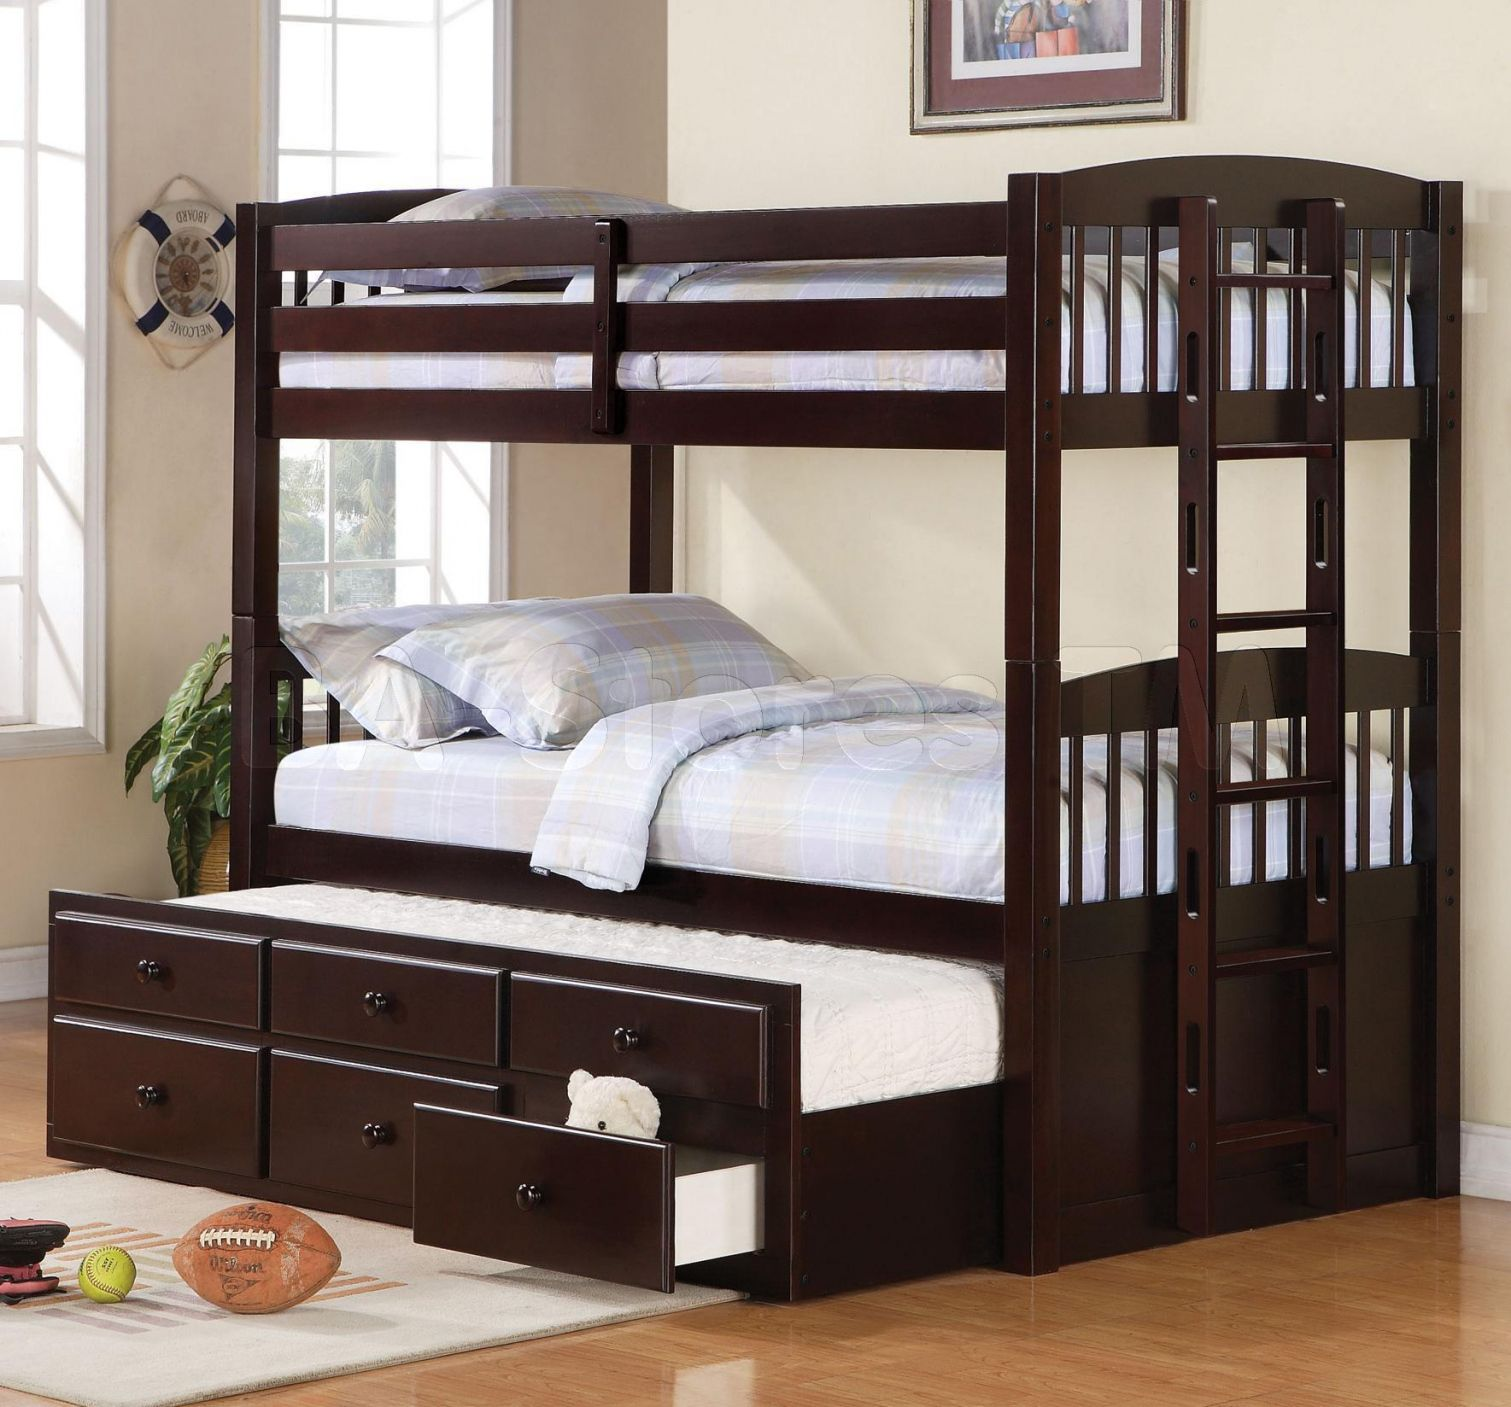 30 bunk bed with pull out double interior design bedroom ideas on